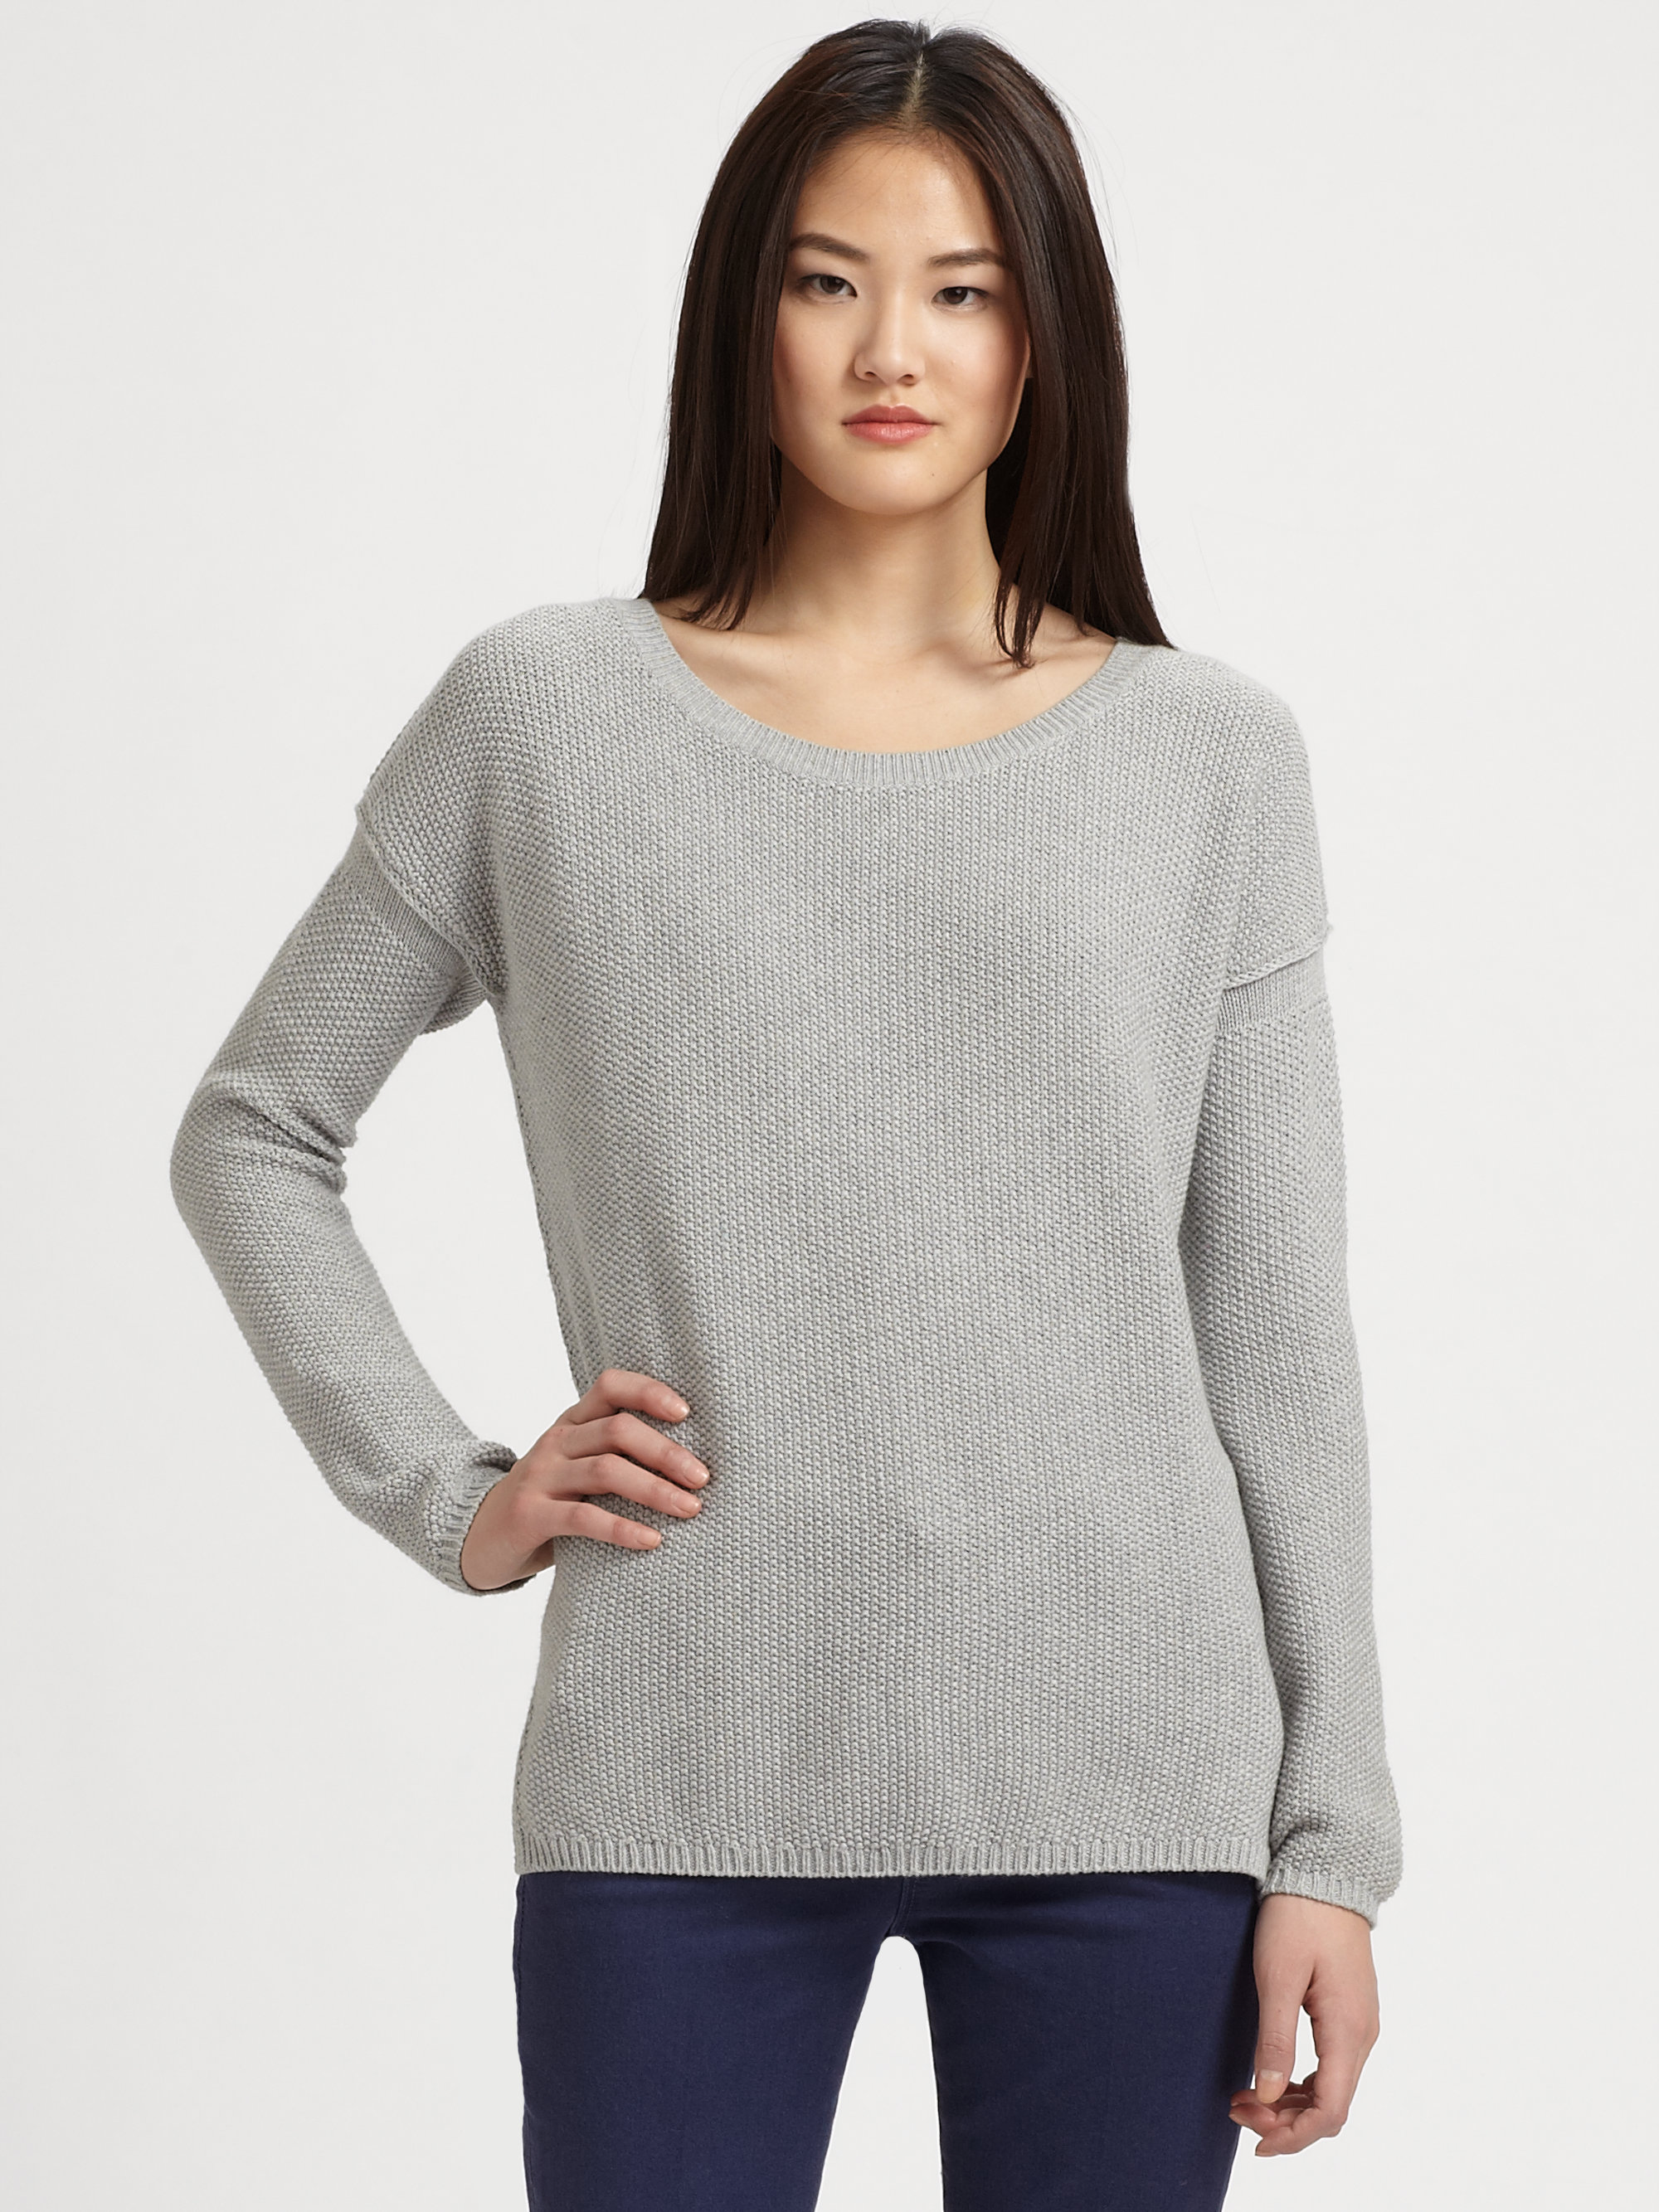 Vince Cotton Cashmere Crewneck Sweater in Gray | Lyst